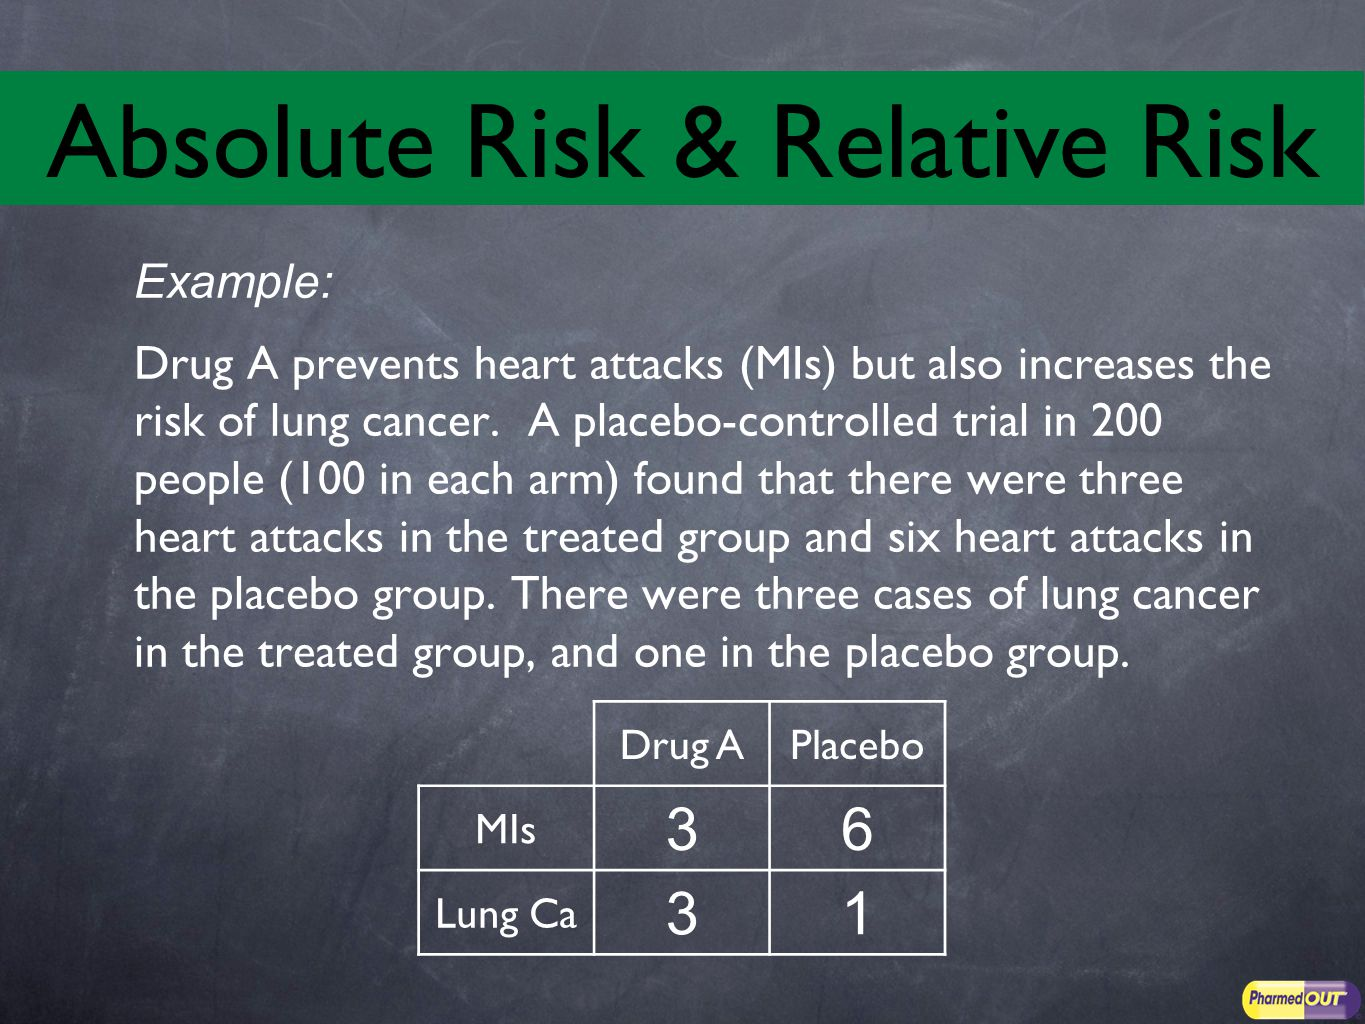 Example: Drug A prevents heart attacks (MIs) but also increases the risk of lung cancer.